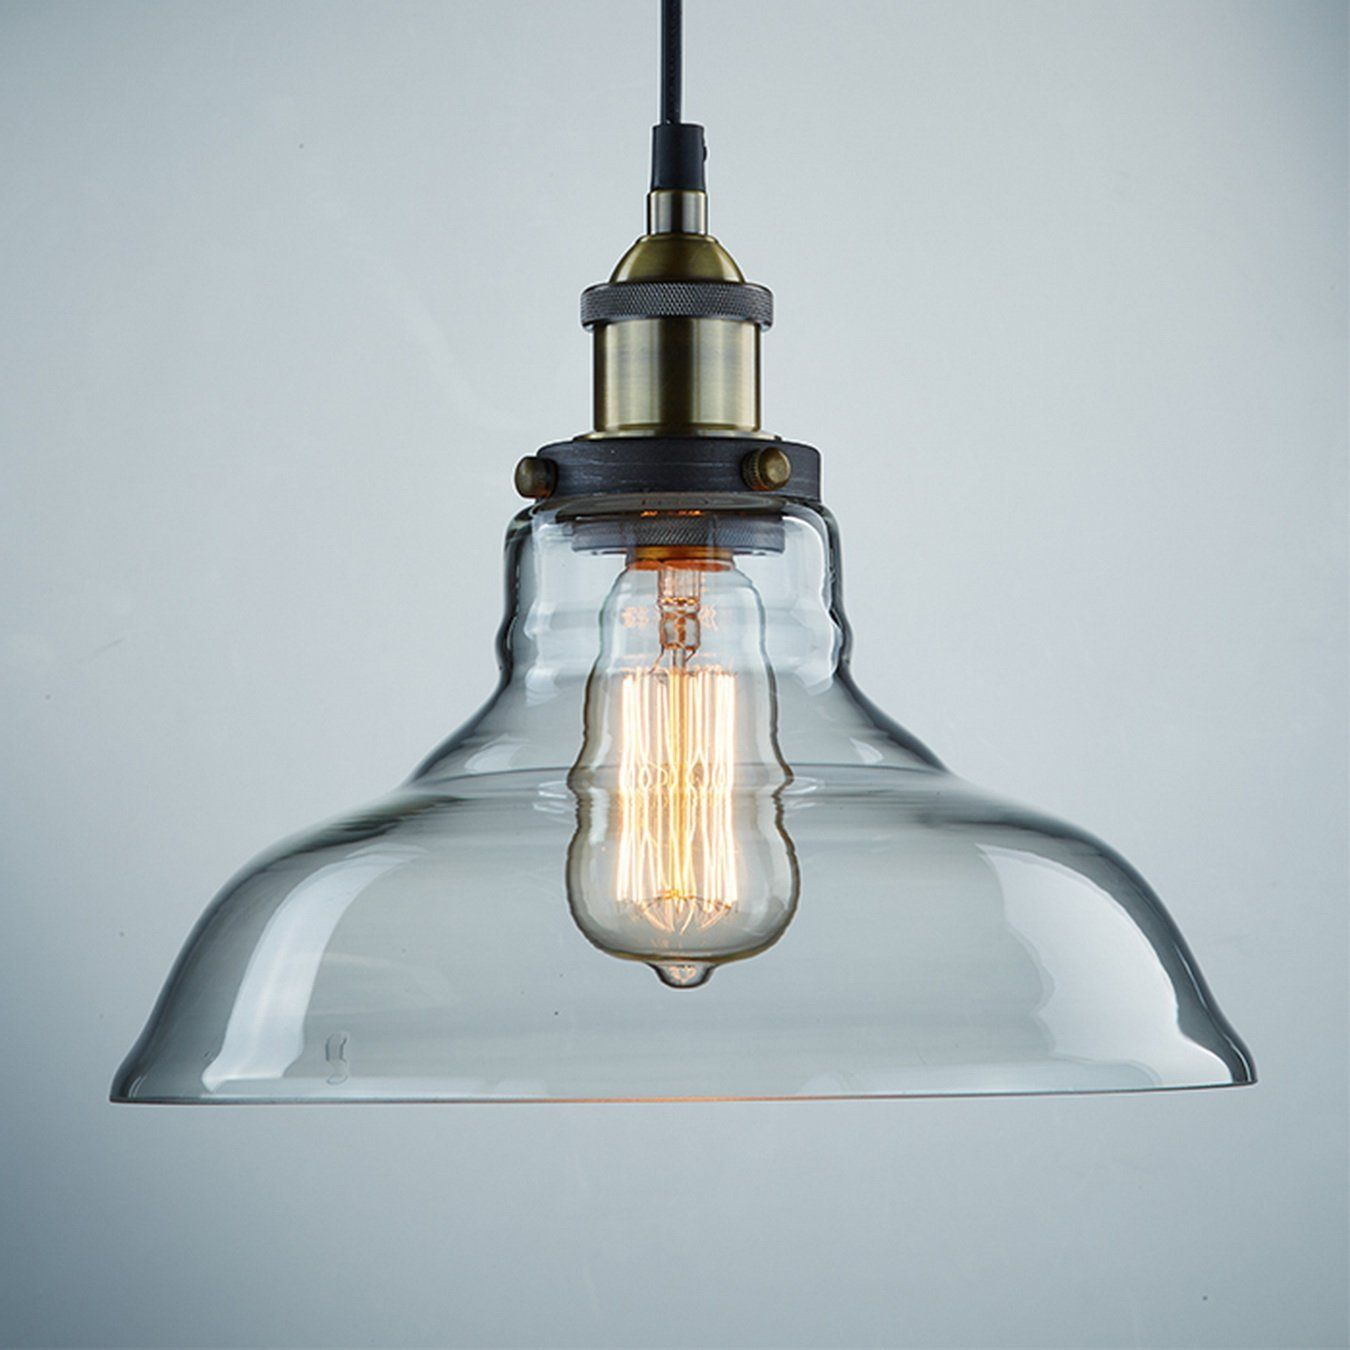 CLAXY Vintage Industrial Glass Ceiling Lamp Shade Pendant Light ...